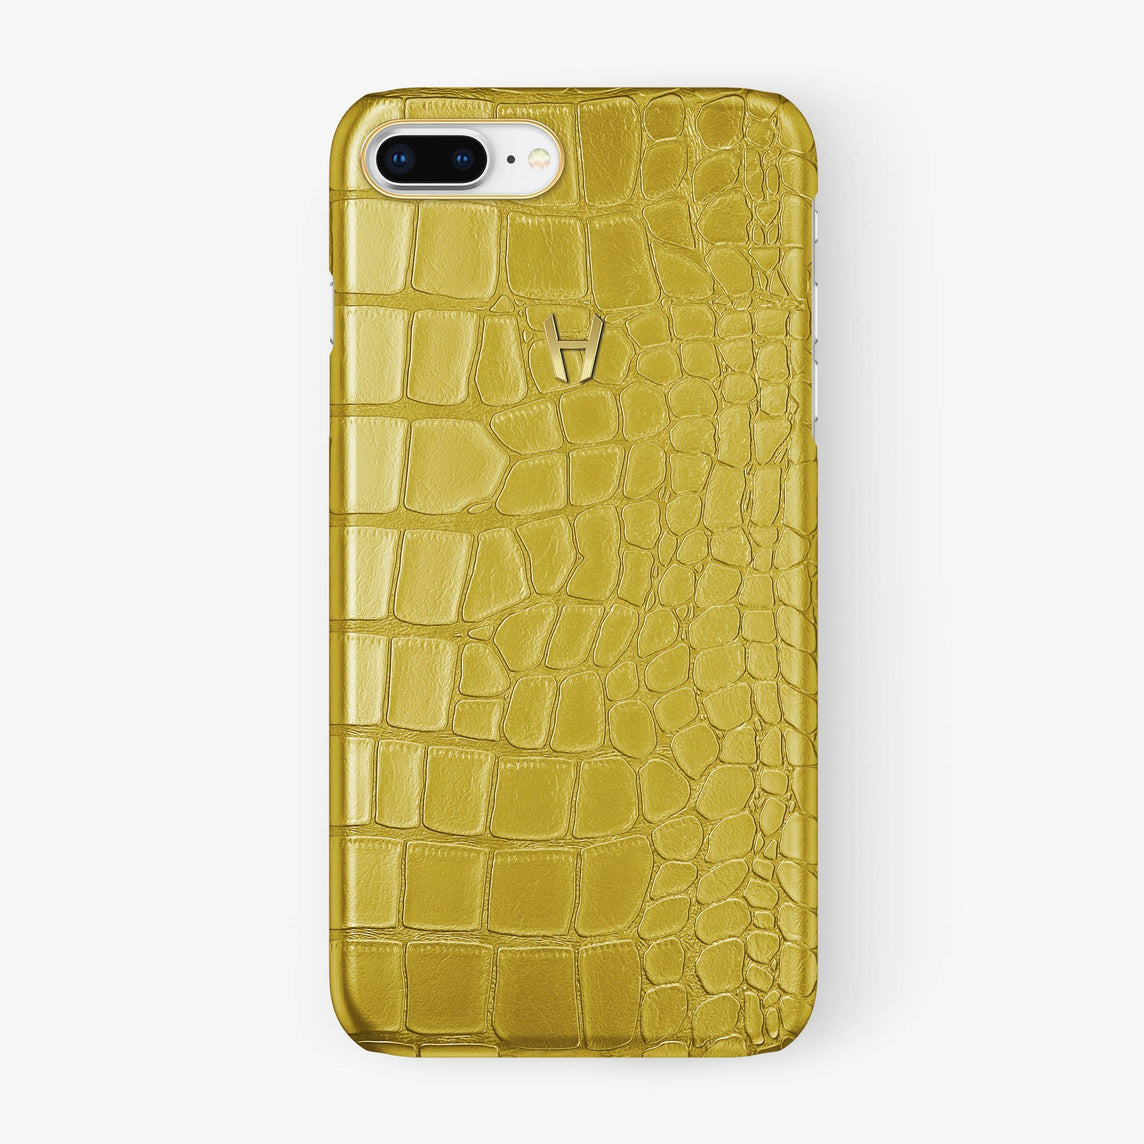 Alligator Case iPhone 7/8 Plus | Yellow - Yellow Gold